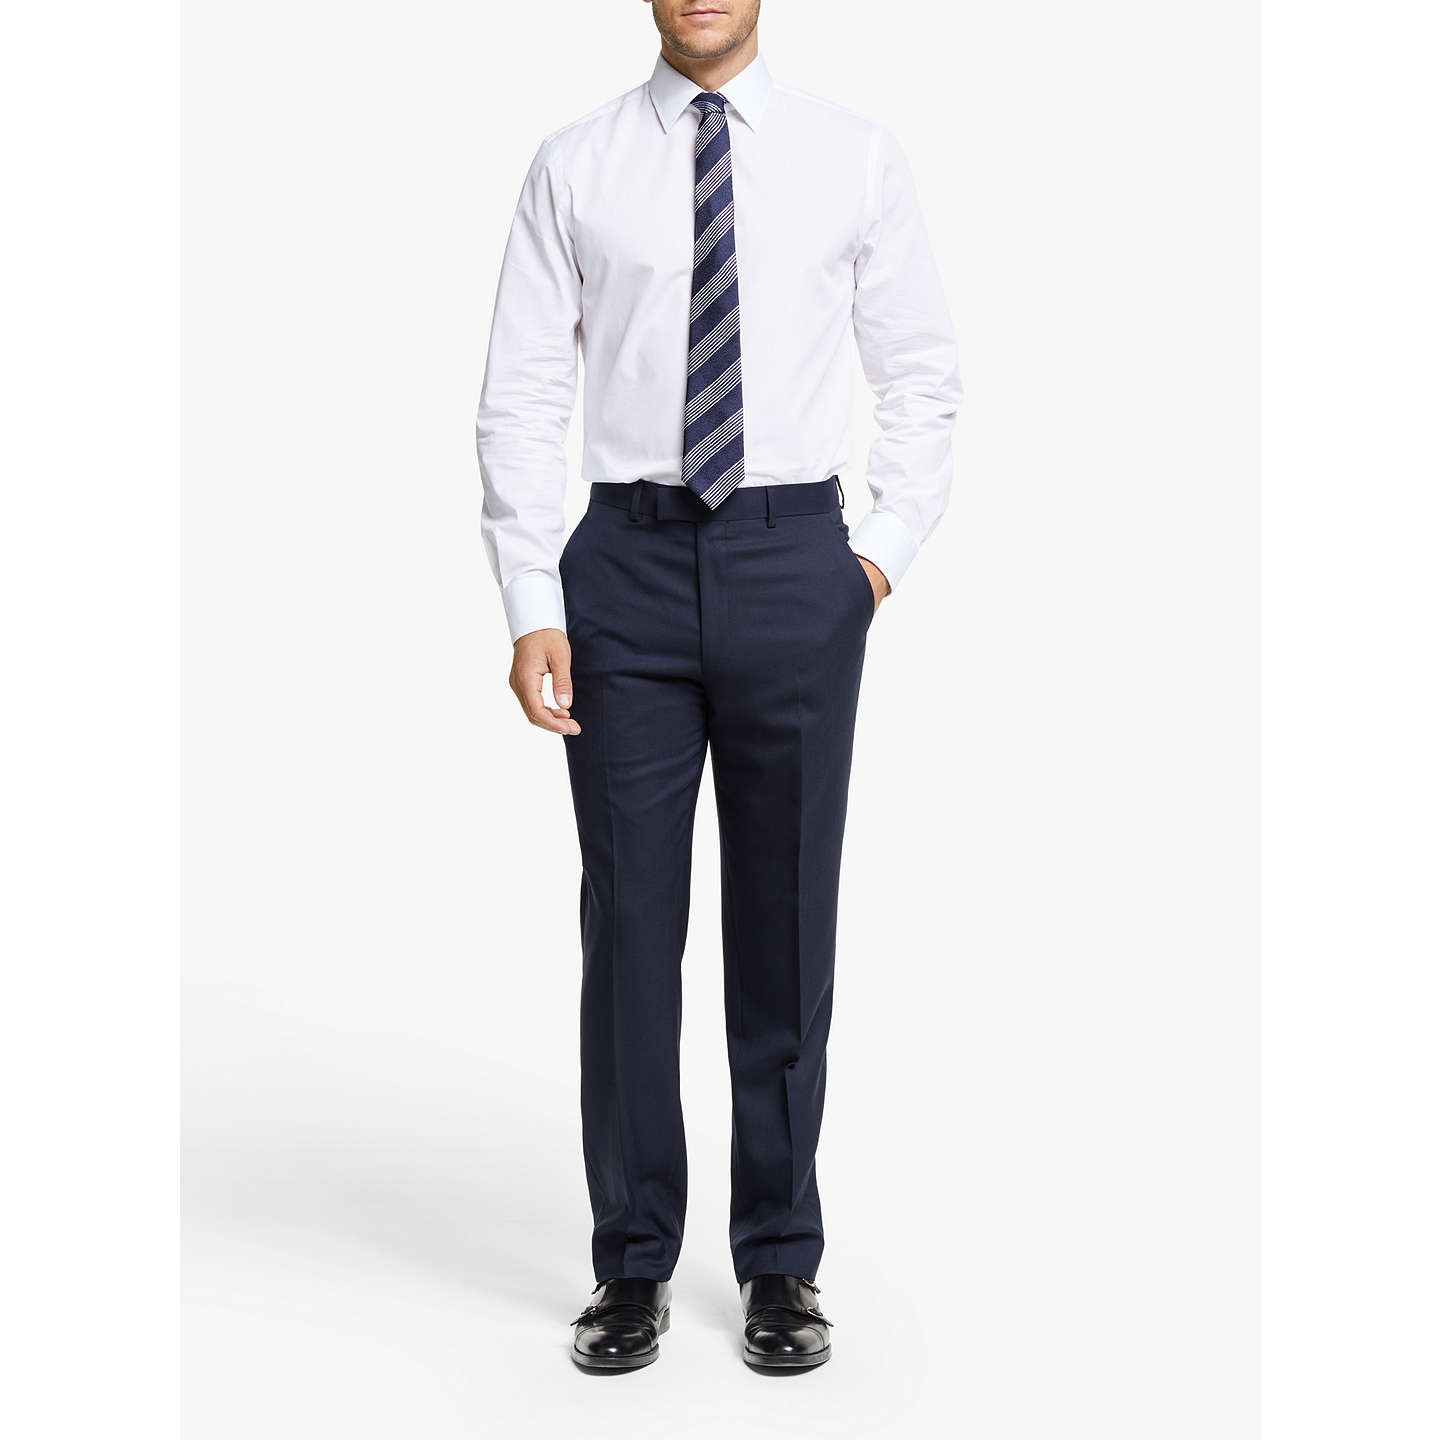 BuyChester by Chester Barrie Hopsack Wool Tailored Suit Trousers, Navy, 32S Online at johnlewis.com